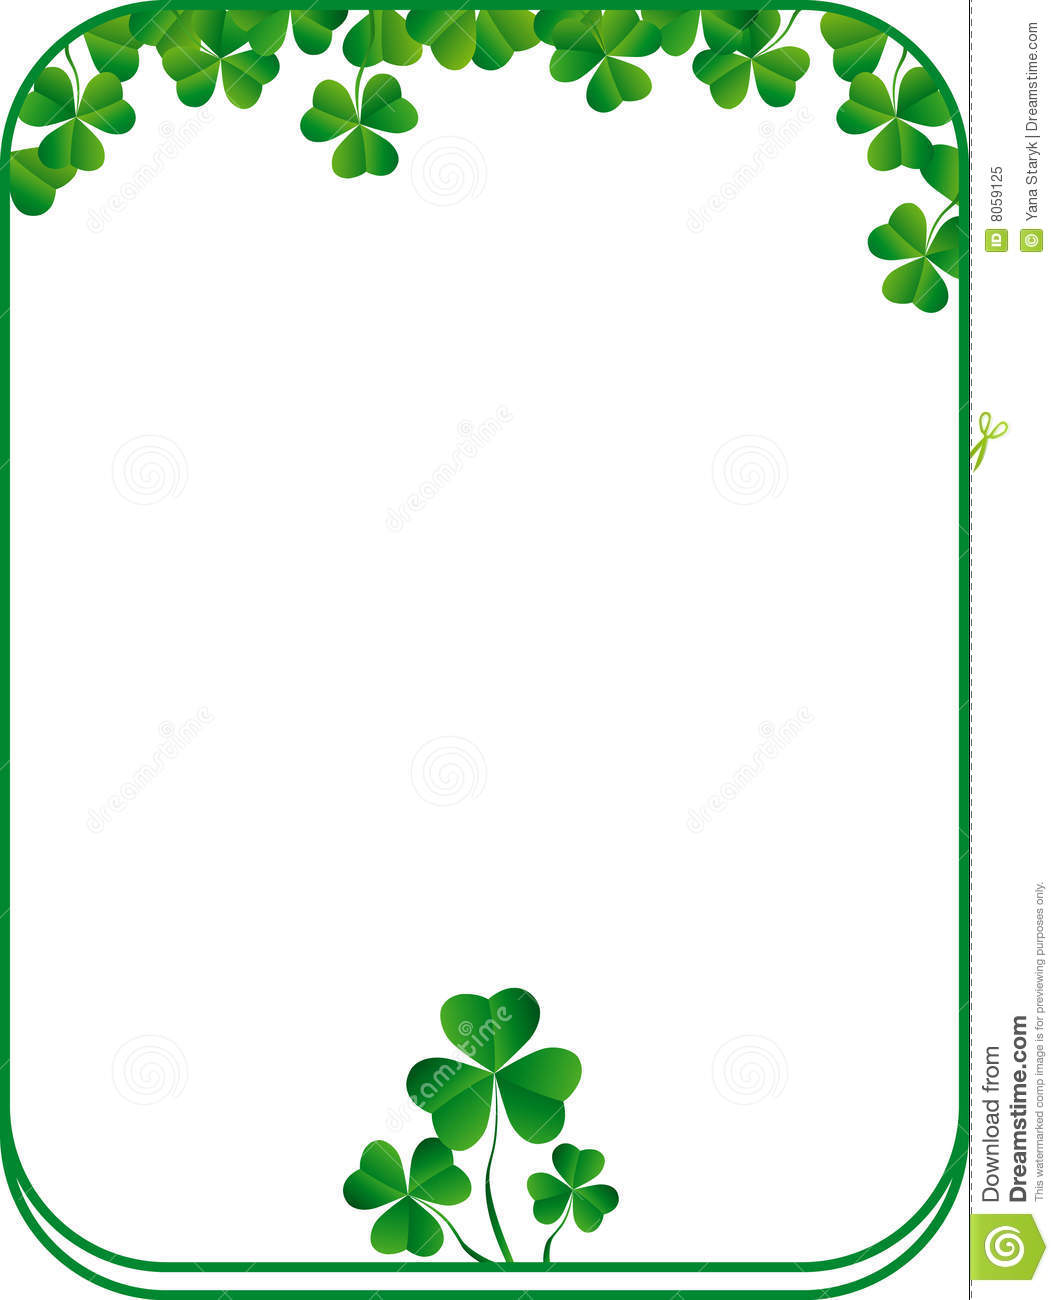 Sticker X Bg Ffffff besides Herdsman And Wild Animals as well Classy Heart Border Page together with Voucher Gift Certificate Coupon Ticket Pattern Template Guilloche Watermark Spirograph Green Background Banknote Money Design additionally Frame Green Clover. on s spiral border green